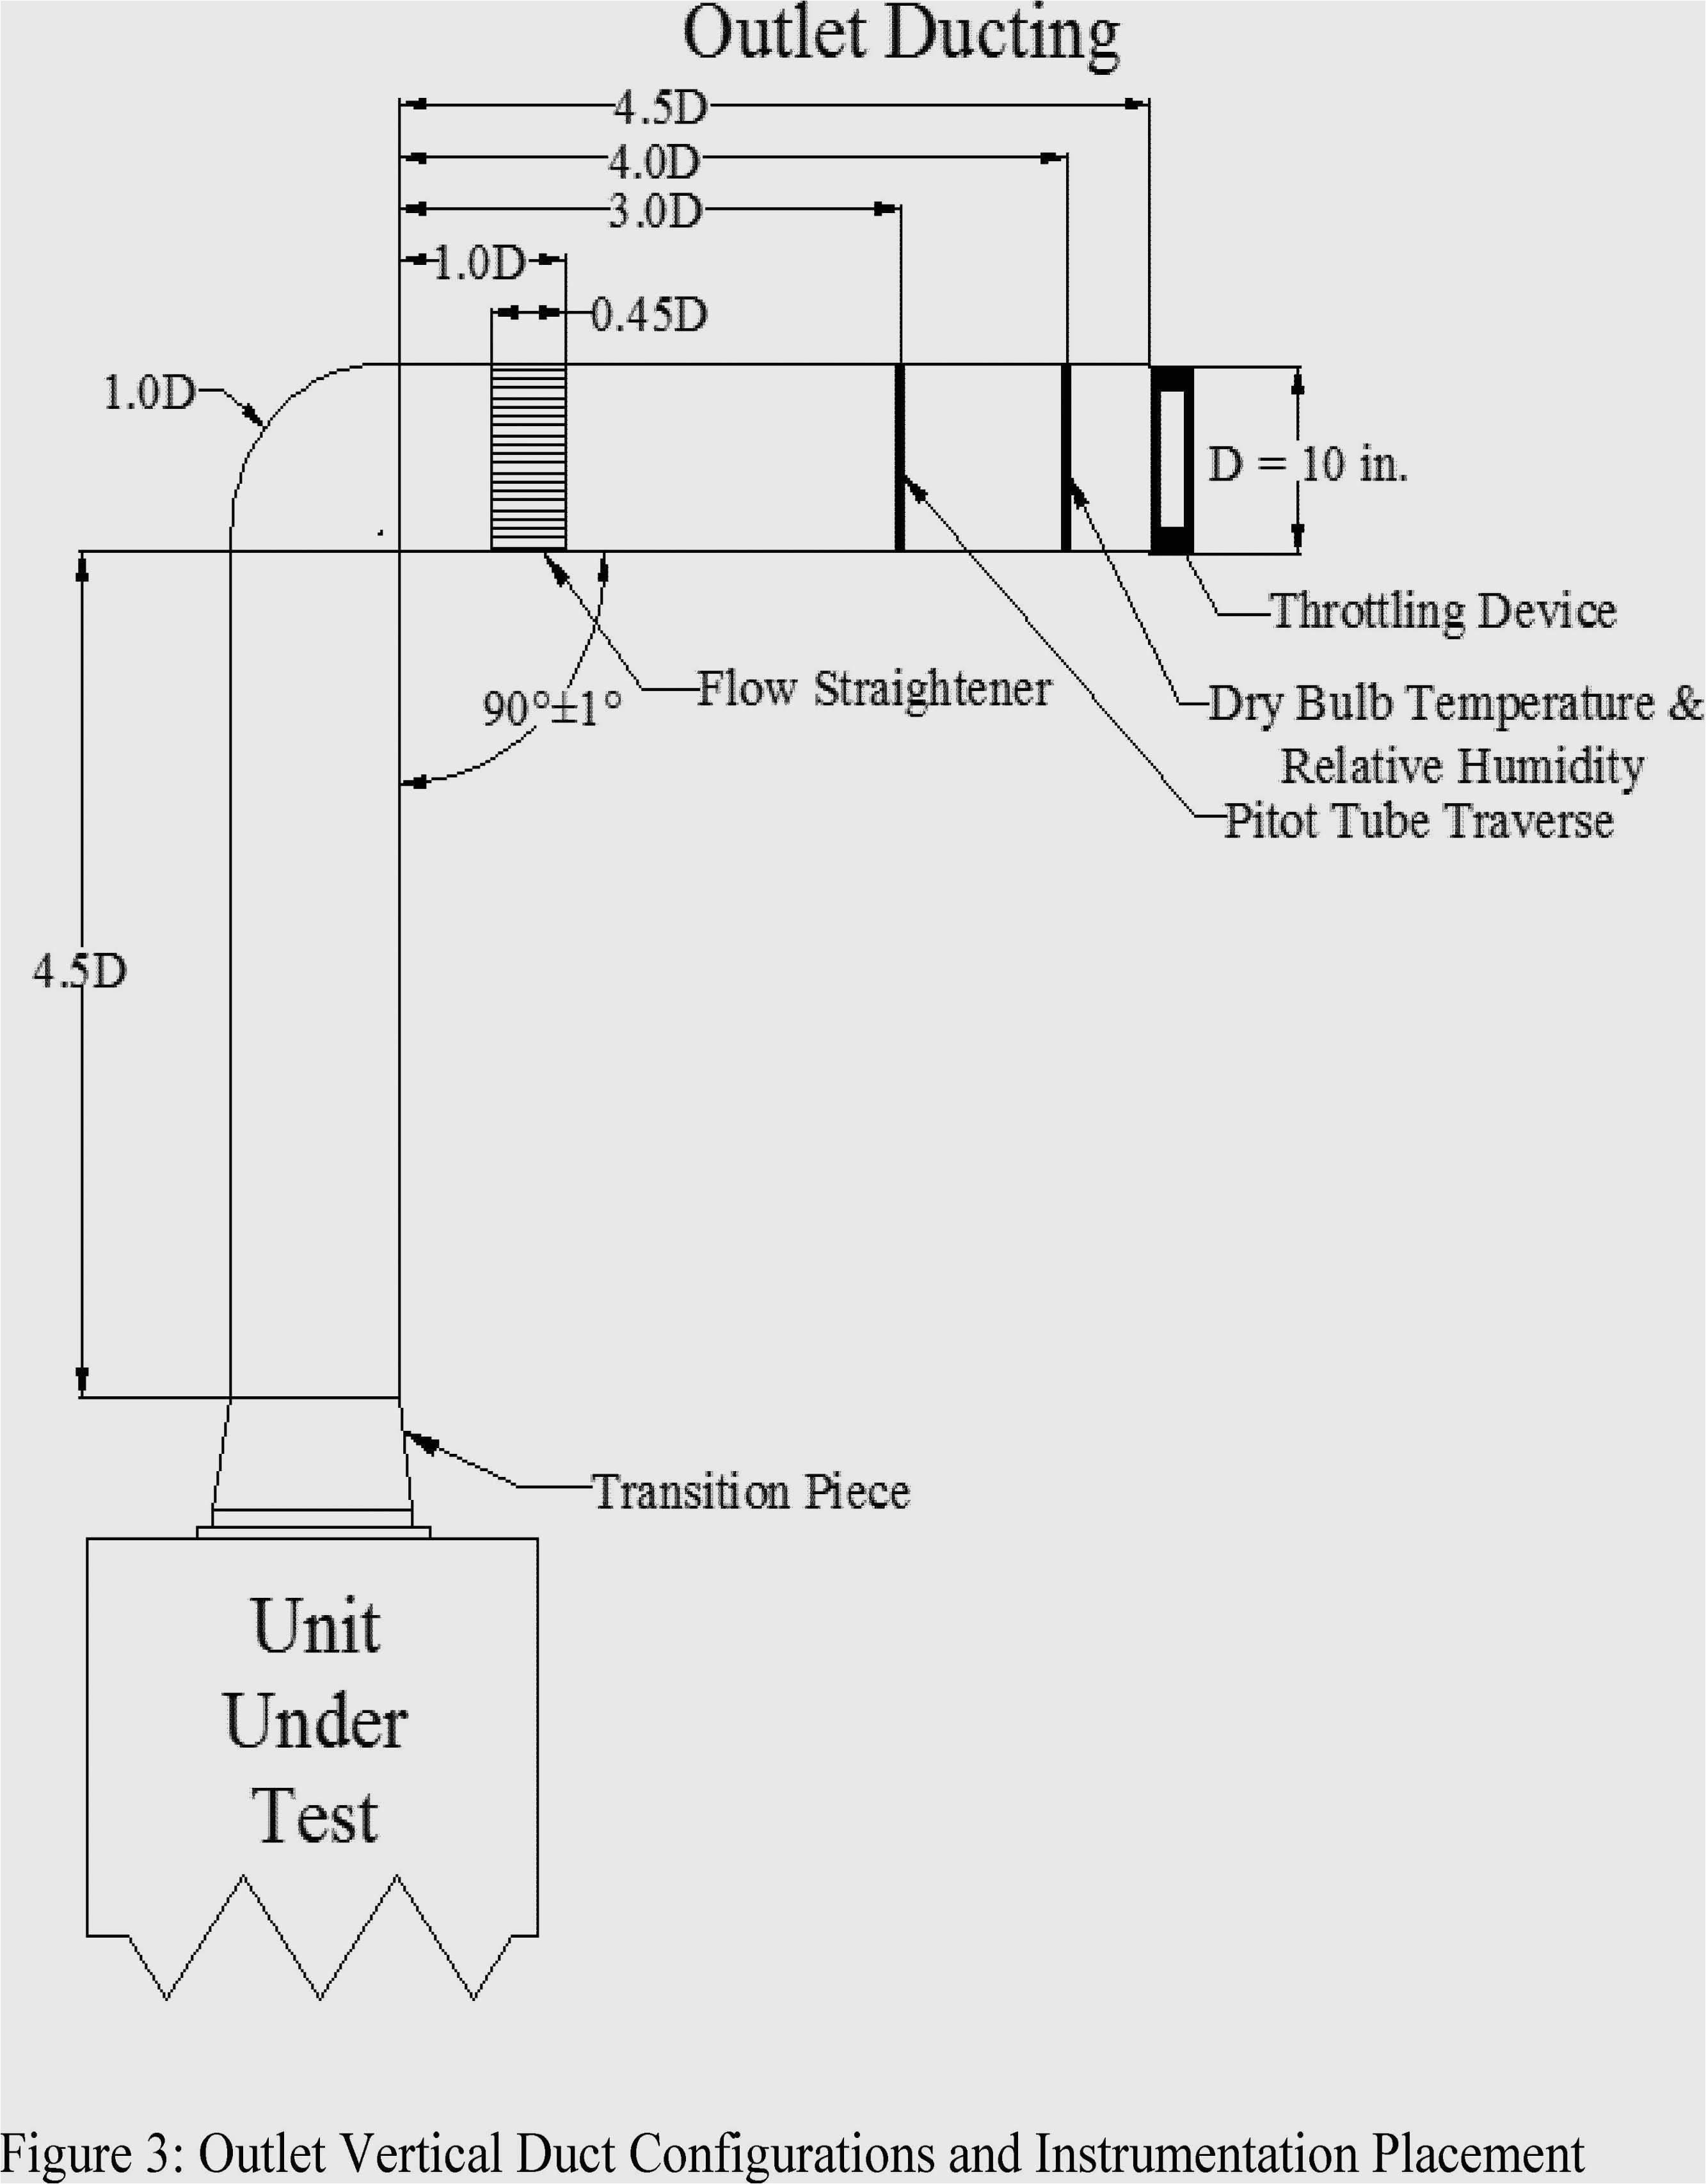 Wiring A Switch to An Outlet Diagram Wiring Diagram 3 Way Switch Inspirational 3 Way Switch Wiring